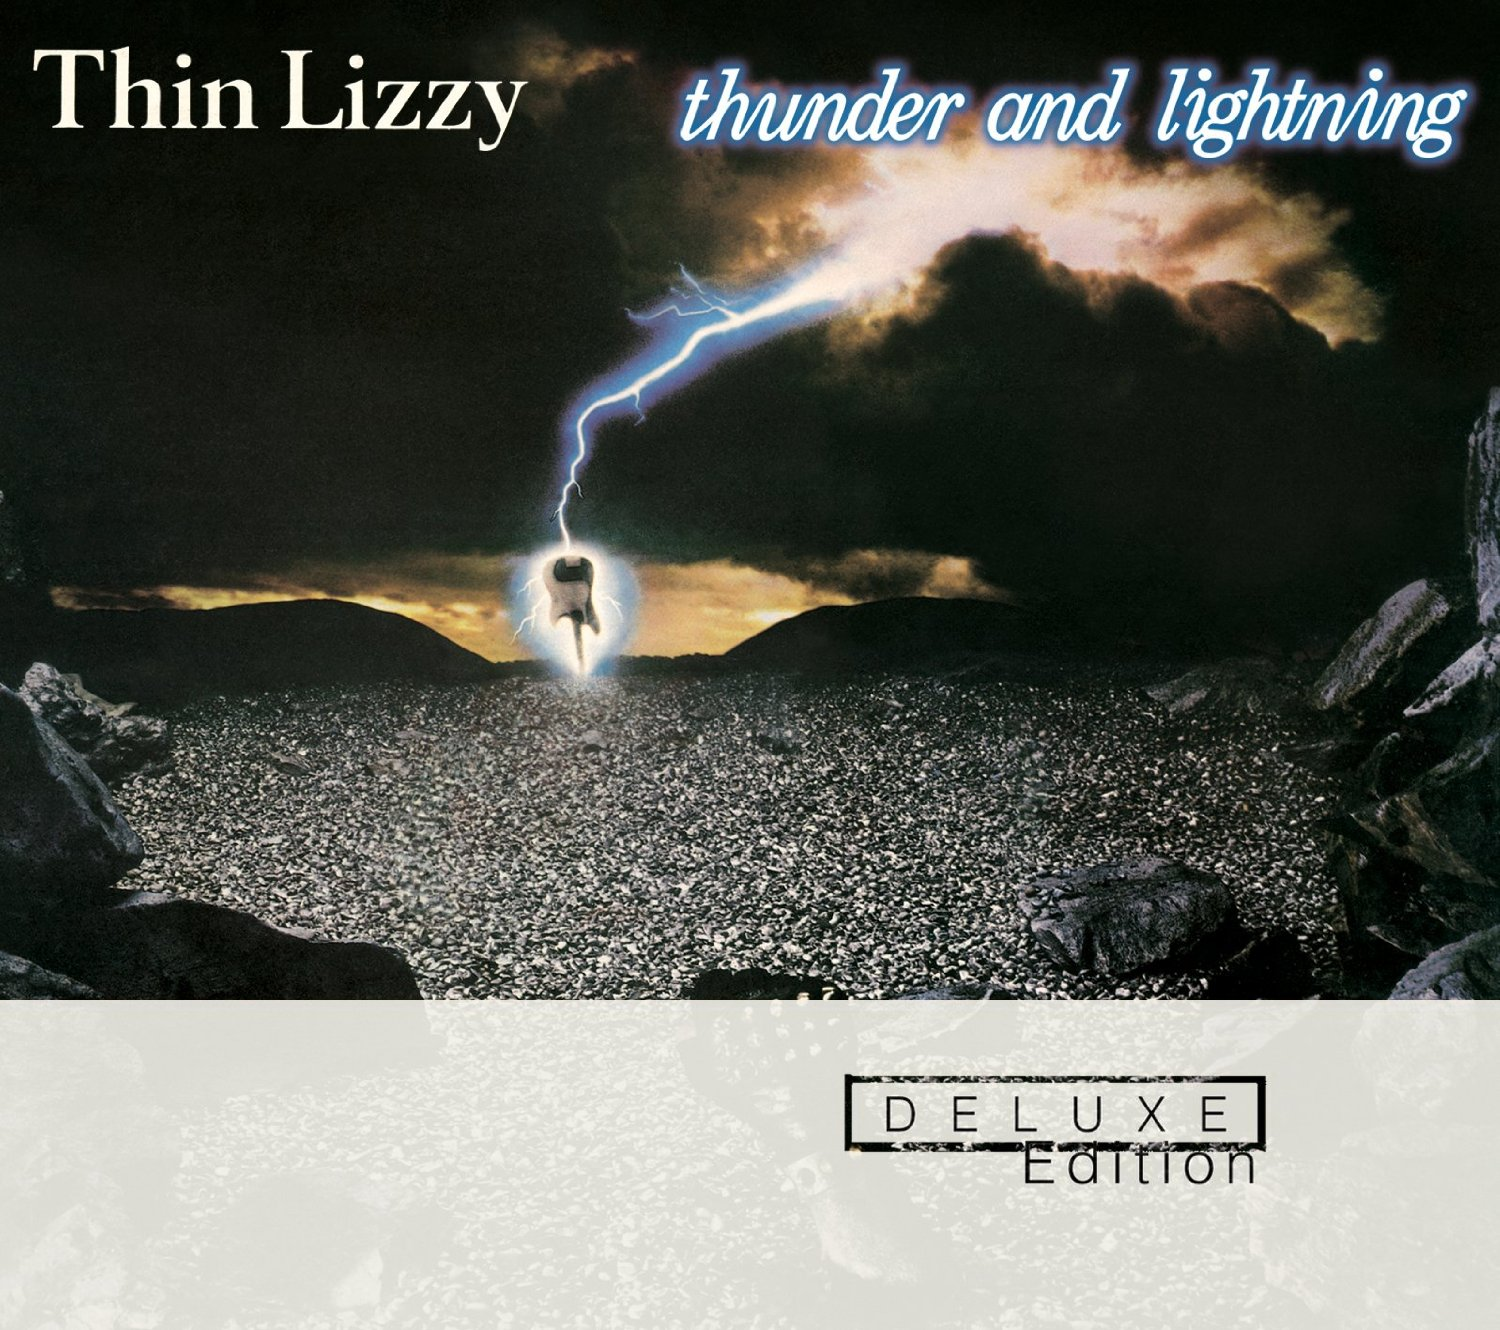 Thin Lizzy / Thunder and Lightning 2CD Deluxe Reissue